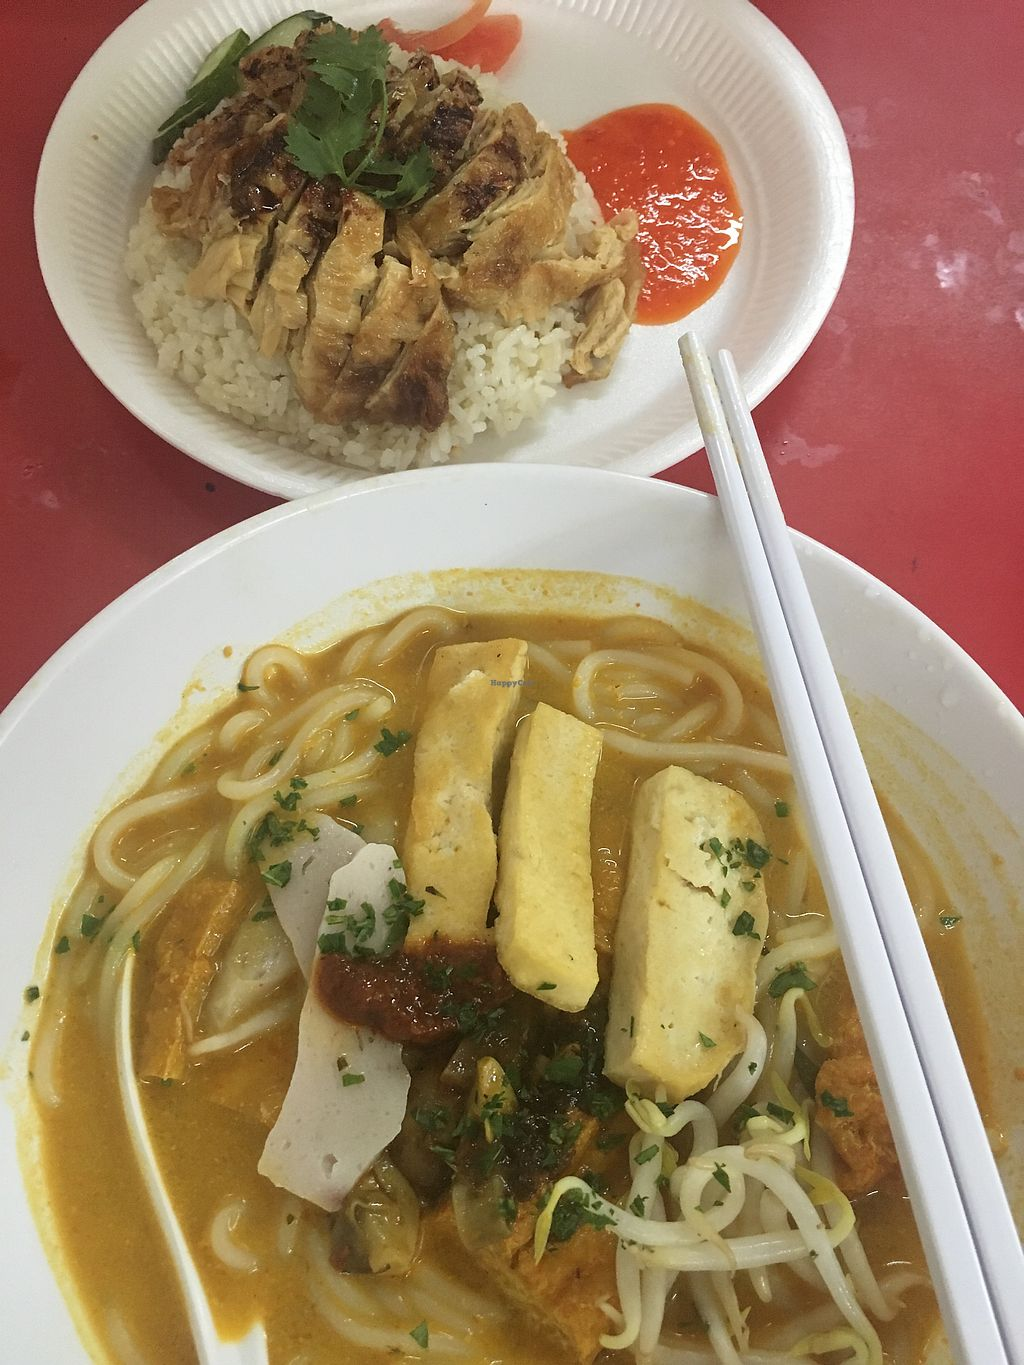 """Photo of An Xin Vegan Stall  by <a href=""""/members/profile/ChenHongwen"""">ChenHongwen</a> <br/>Vegan Laksa and Chicken Rice (no garlic/onion) <br/> March 29, 2018  - <a href='/contact/abuse/image/114347/377608'>Report</a>"""